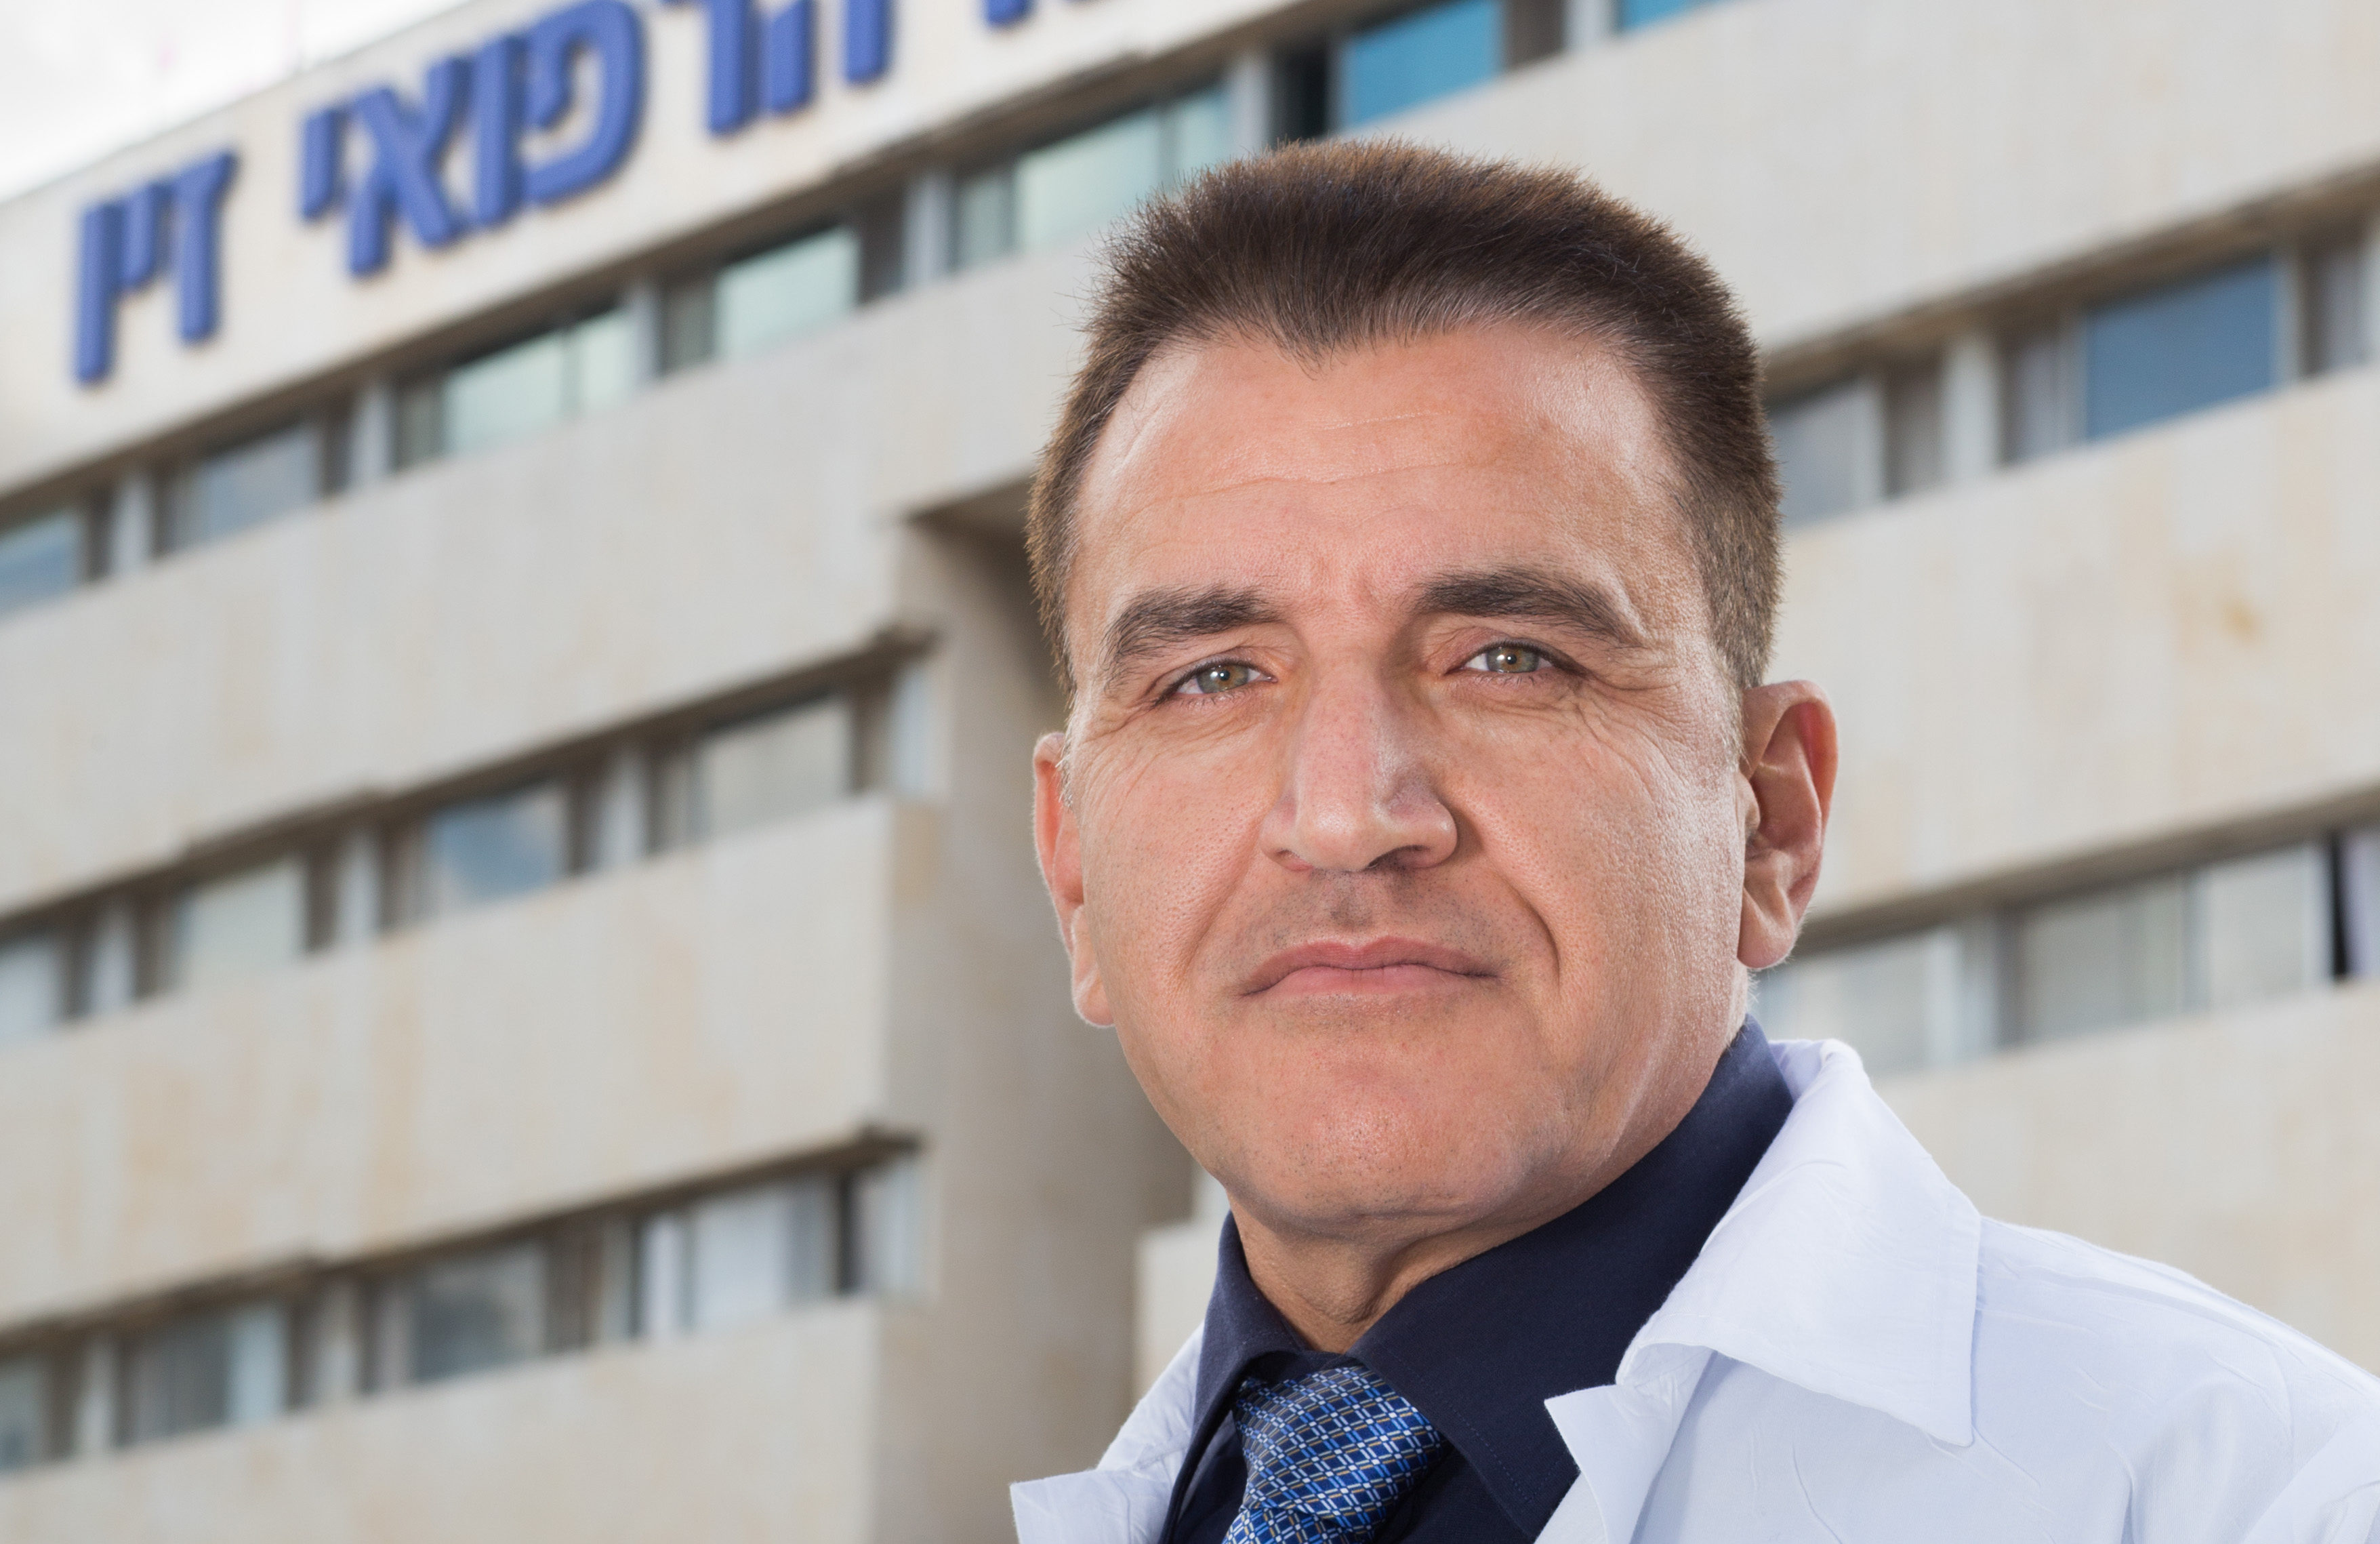 Dr. Salman Zarka of Ziv Medical Center in Israel will be honored at a Friends of the IDF gala in San Francsico, Oct. 29. (Photo/Courtesy Friends of Ziv Medical Center)